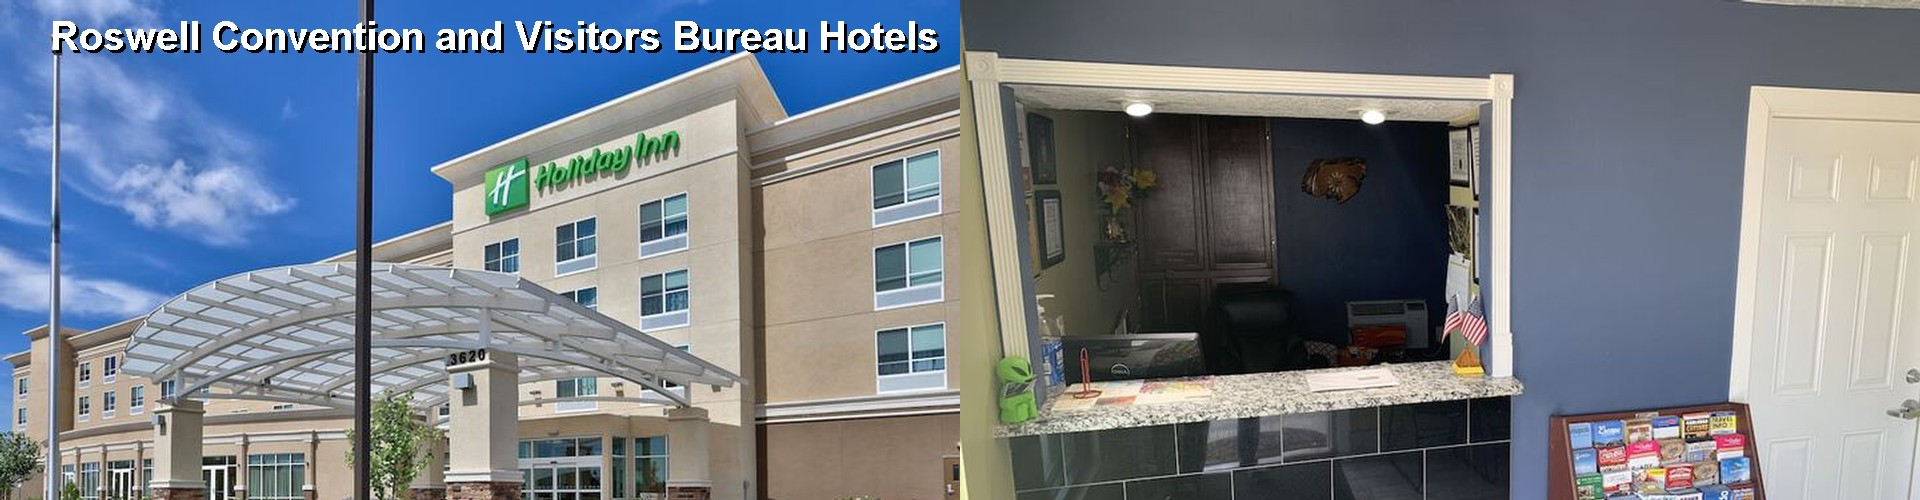 5 Best Hotels Near Roswell Convention And Visitors Bureau